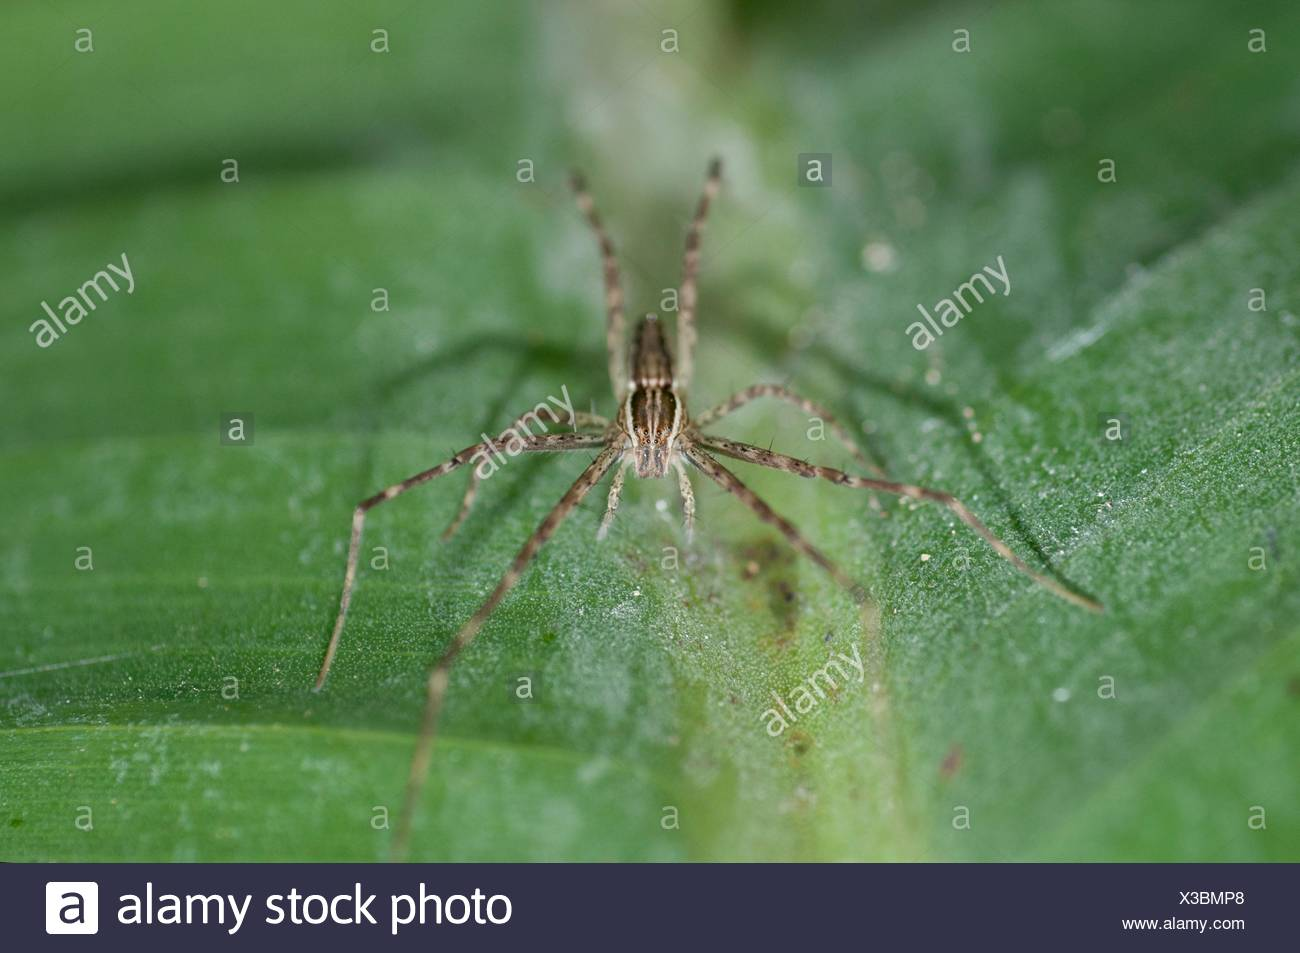 Nursery Web Spider (Araneae order, Pisauridae family) on leaf, Klungkung, Bali, Indonesia. - Stock Image